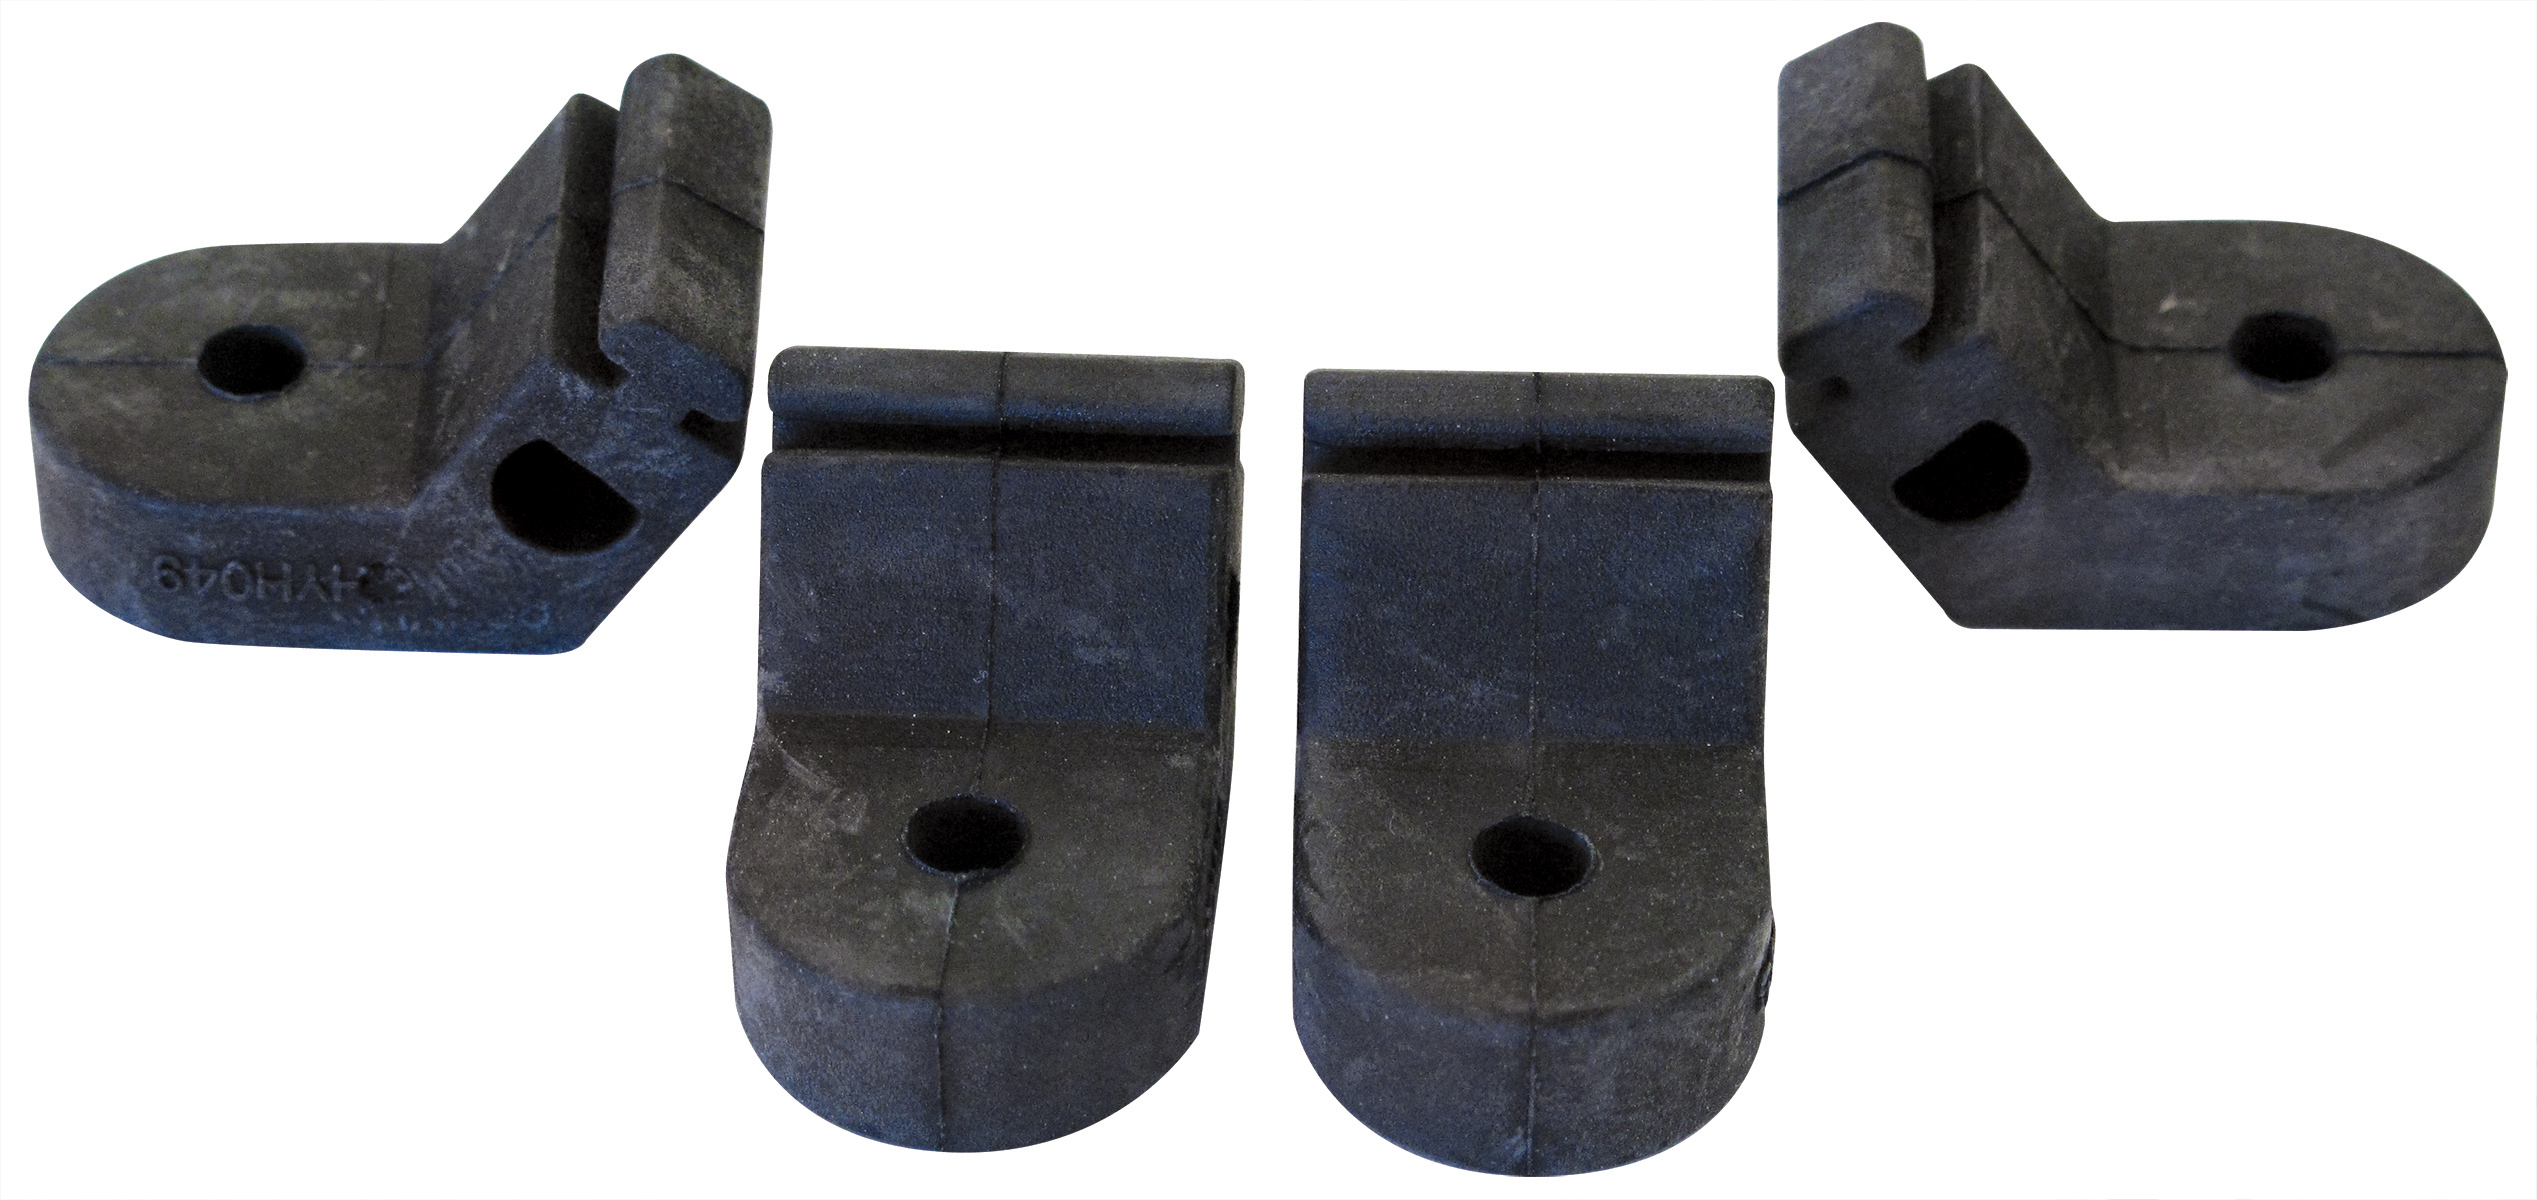 Murdoch S Fimco Mounting Feet For 1 0 2 1 High Flo